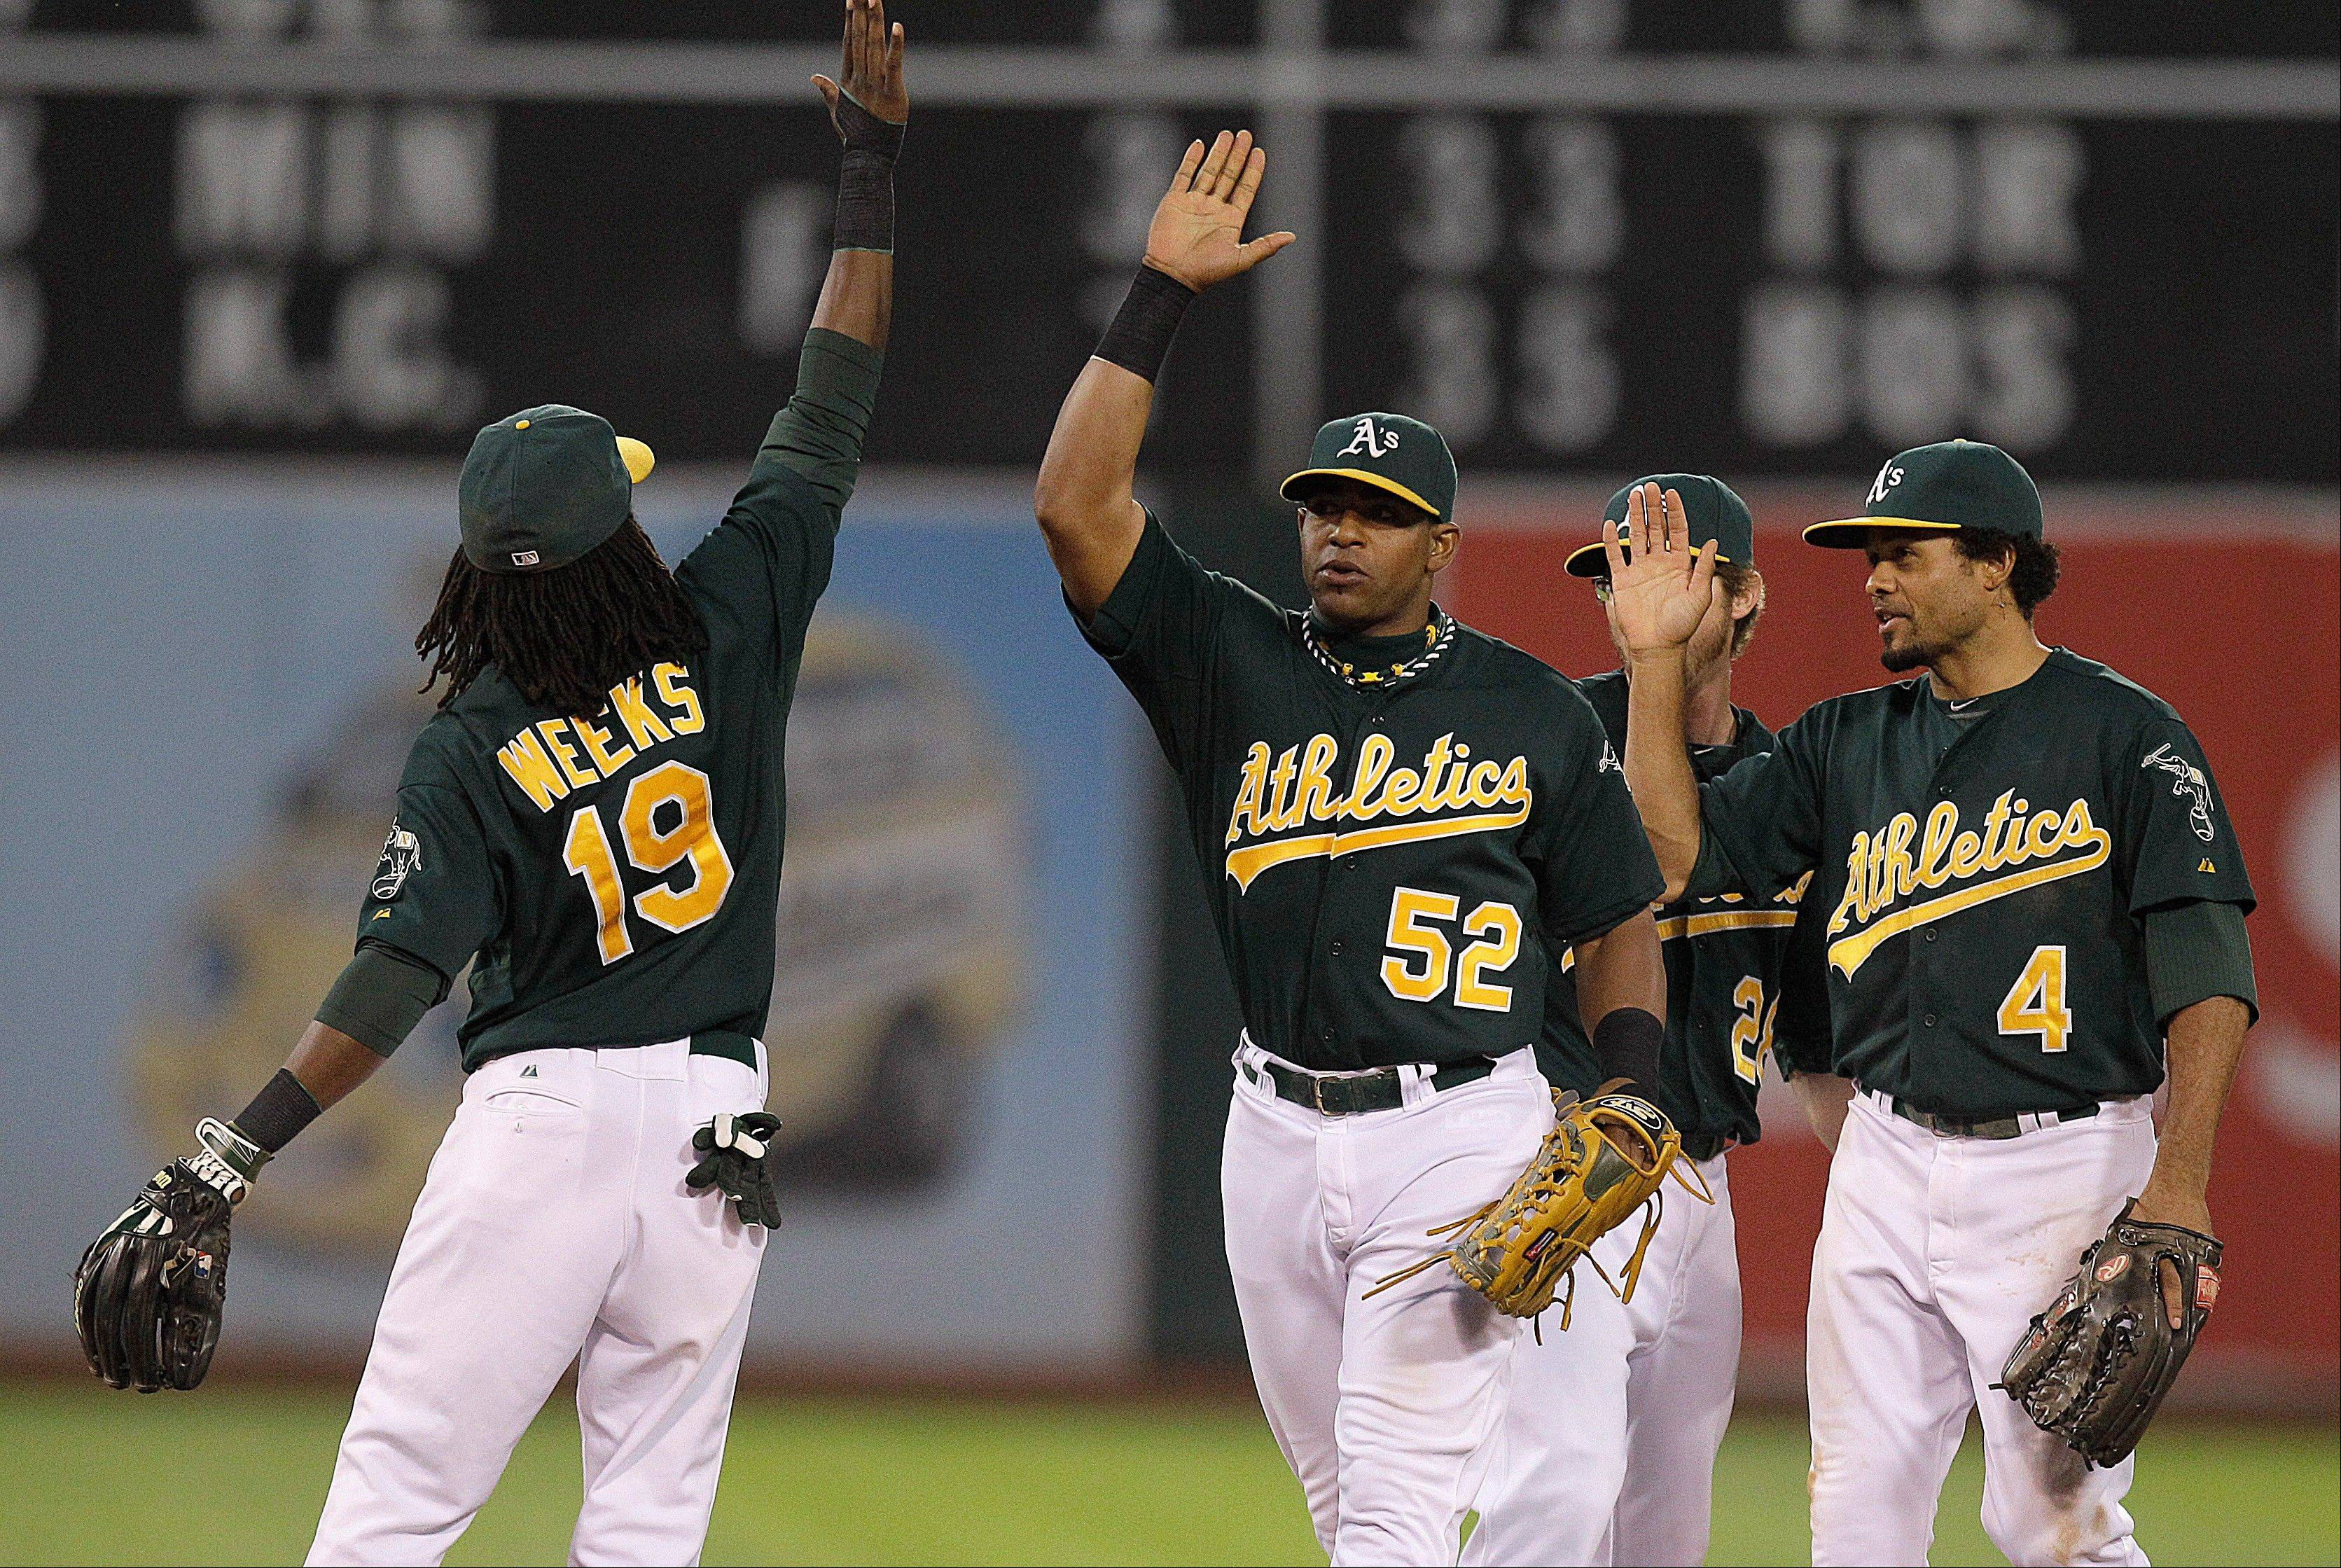 Oakland�s Jemile Weeks (19), Yoenis Cespedes (52) and Coco Crisp celebrate a 2-1 victory over New York on Saturday at home. The low-budget A�s swept the four-game series against the $200 million Yankees.